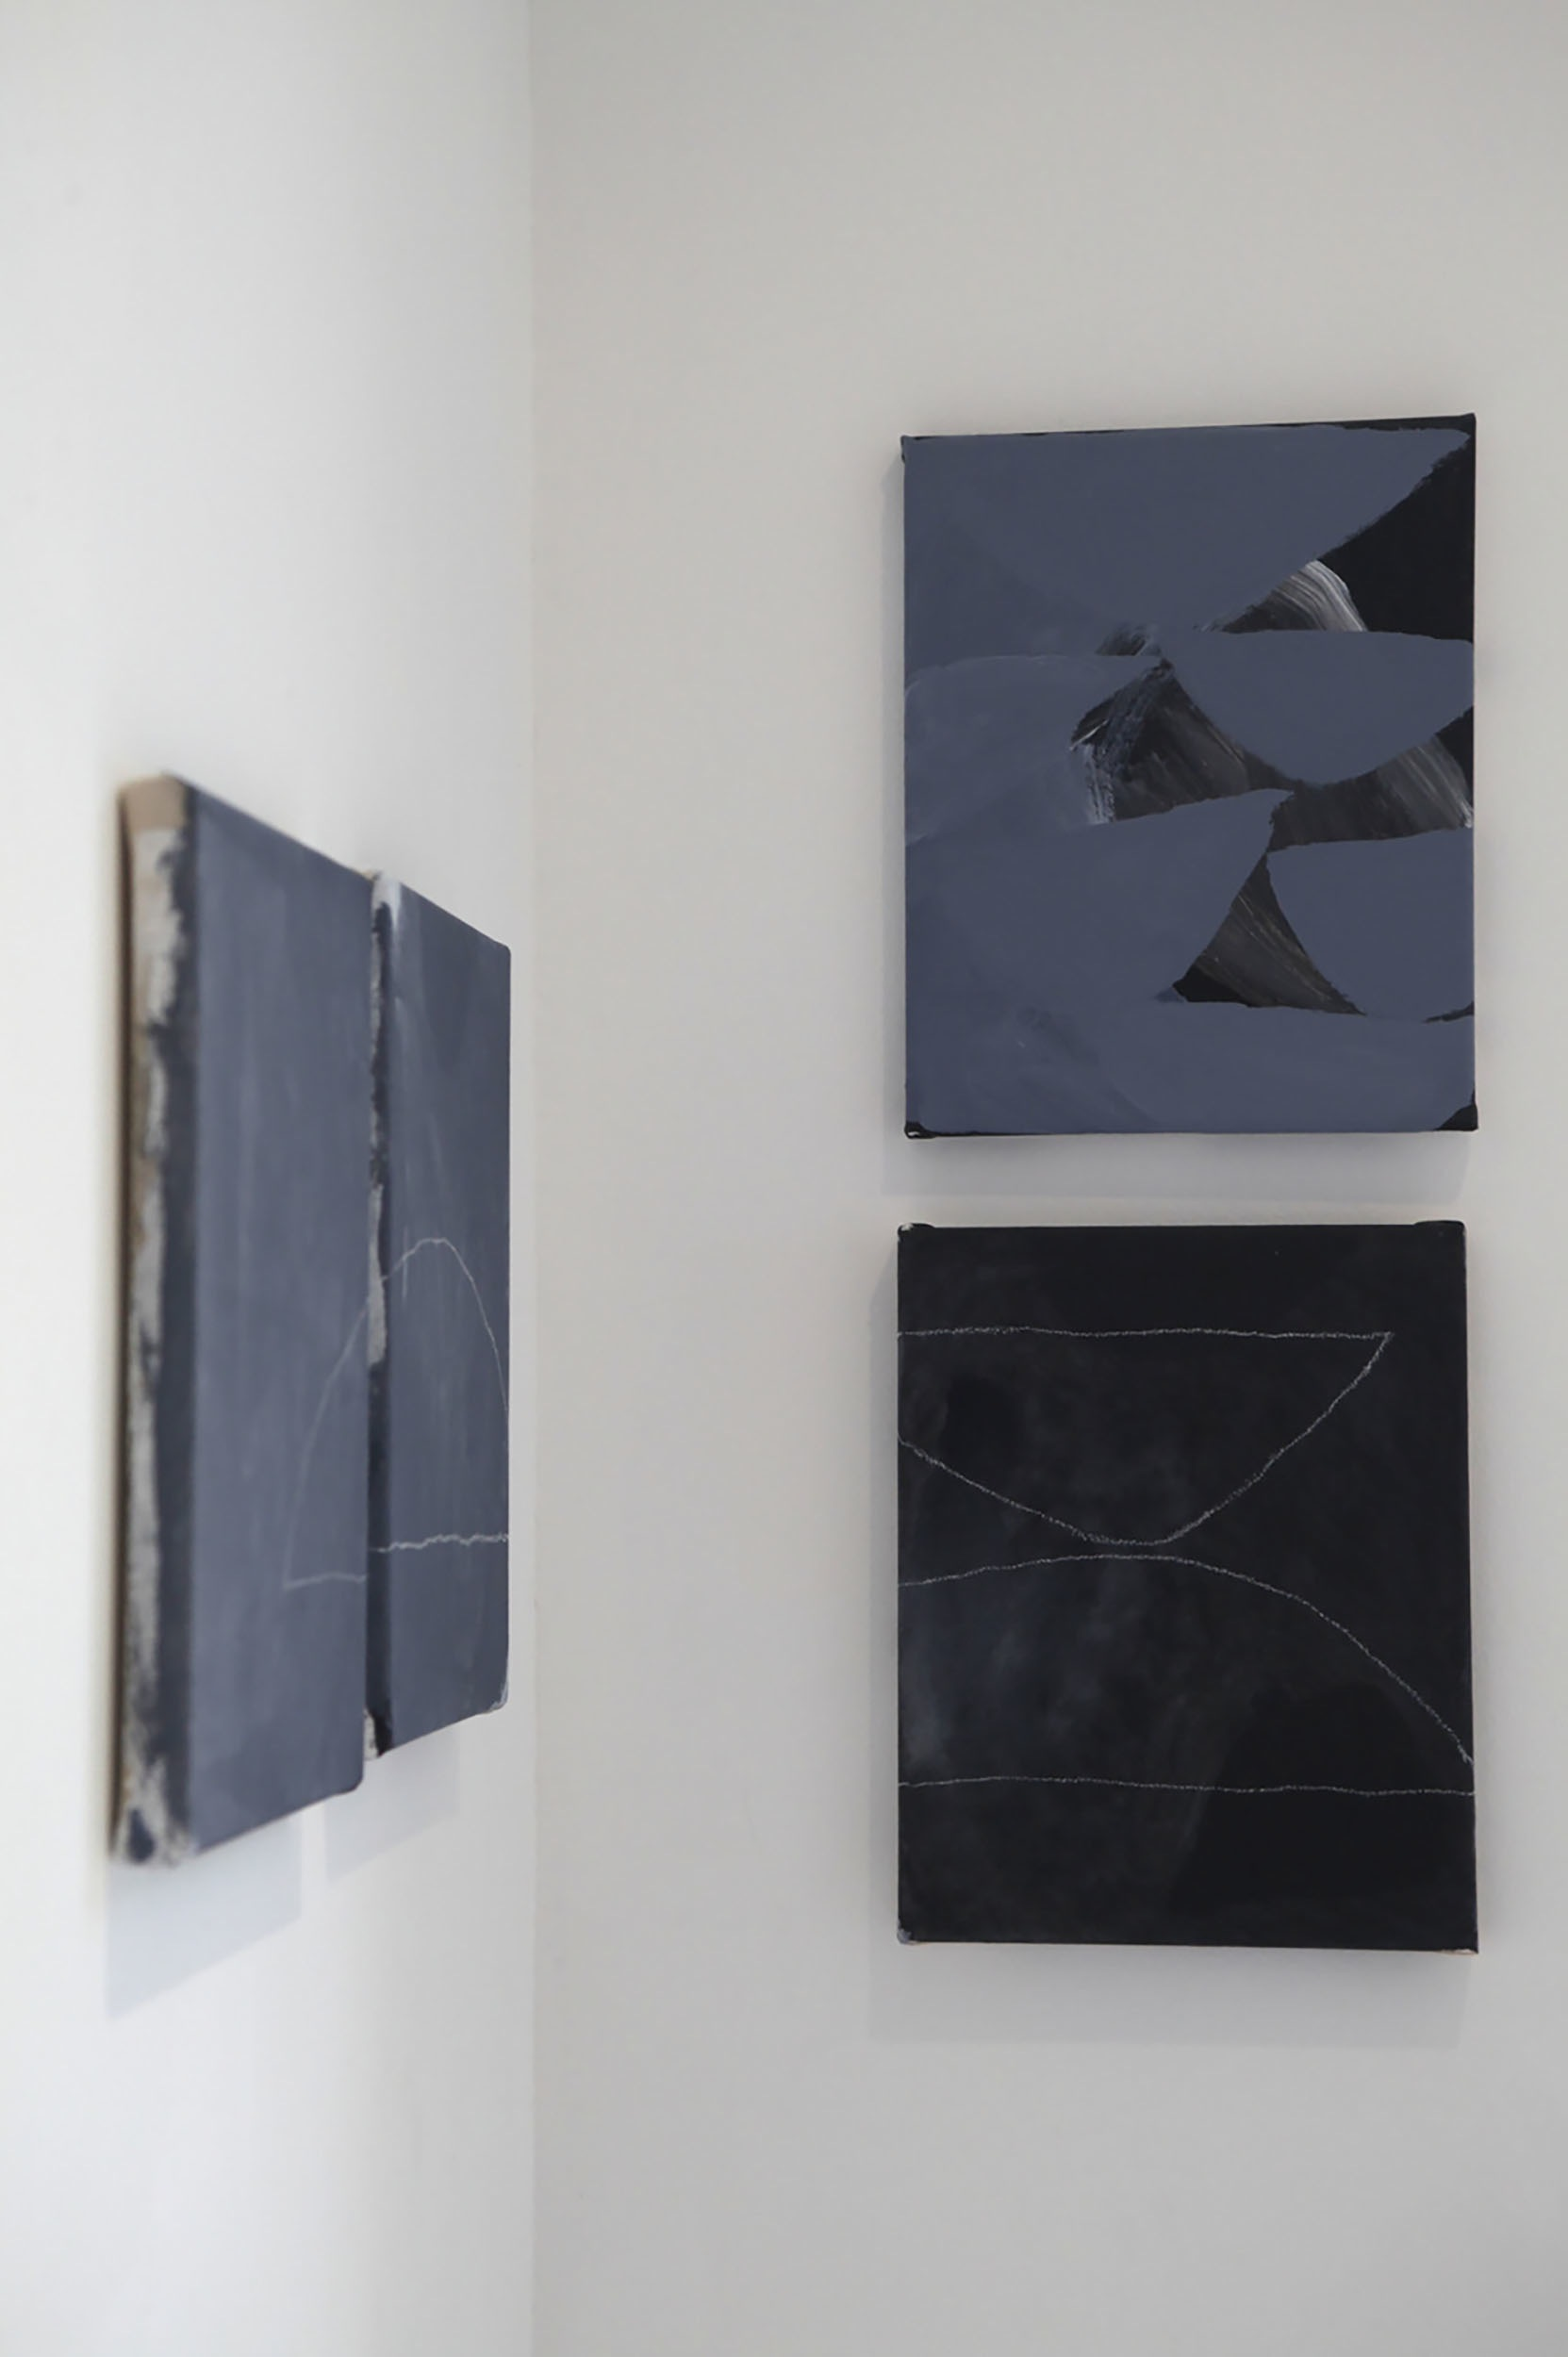 Untitled , 2014 gesso, acrylic and pencil on stretched canvas 30 x 24 cm each (H x W cm)  11.8 x 9.4 inches SOLD